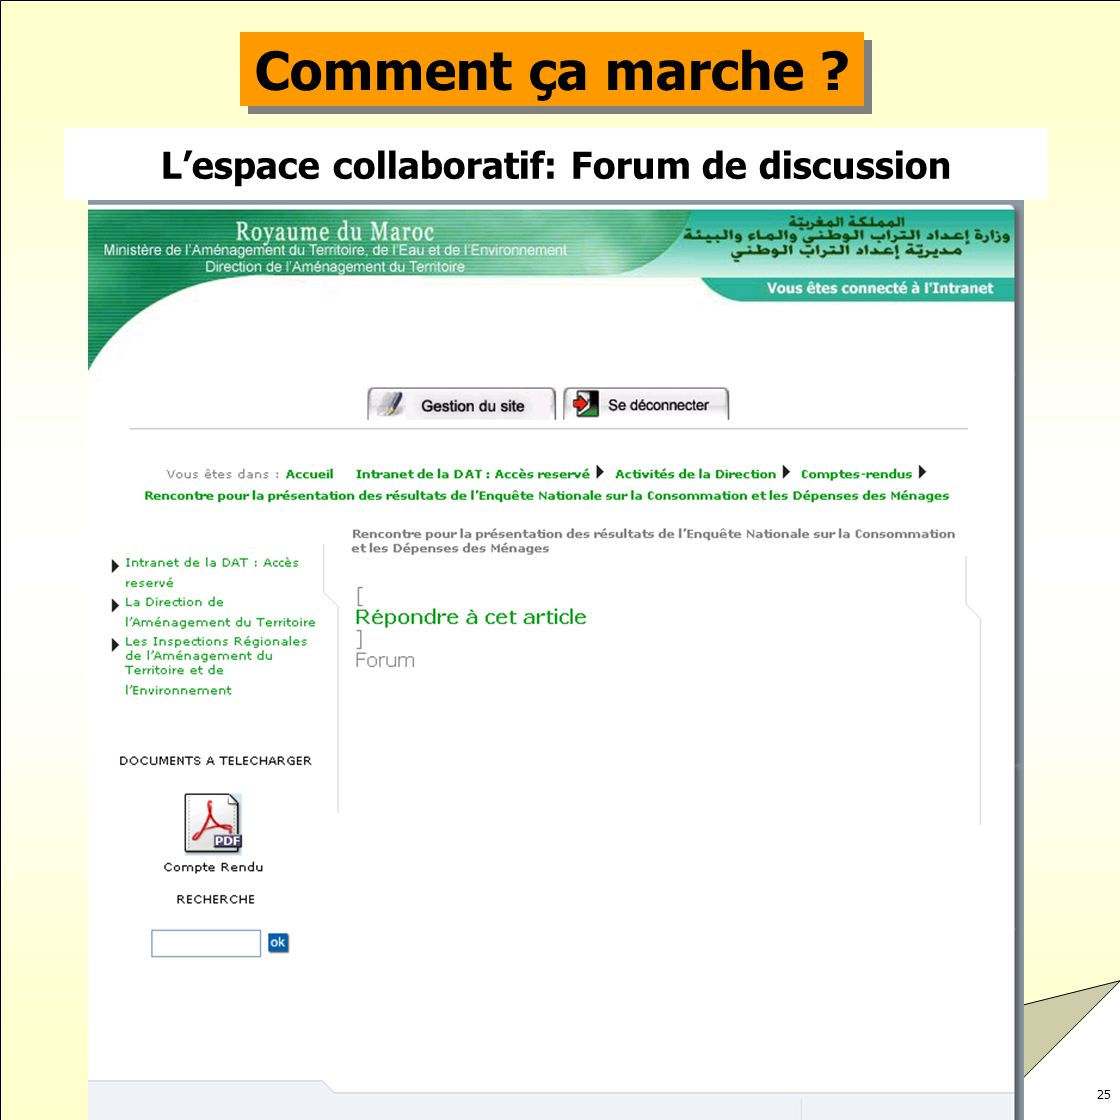 L'espace collaboratif: Forum de discussion